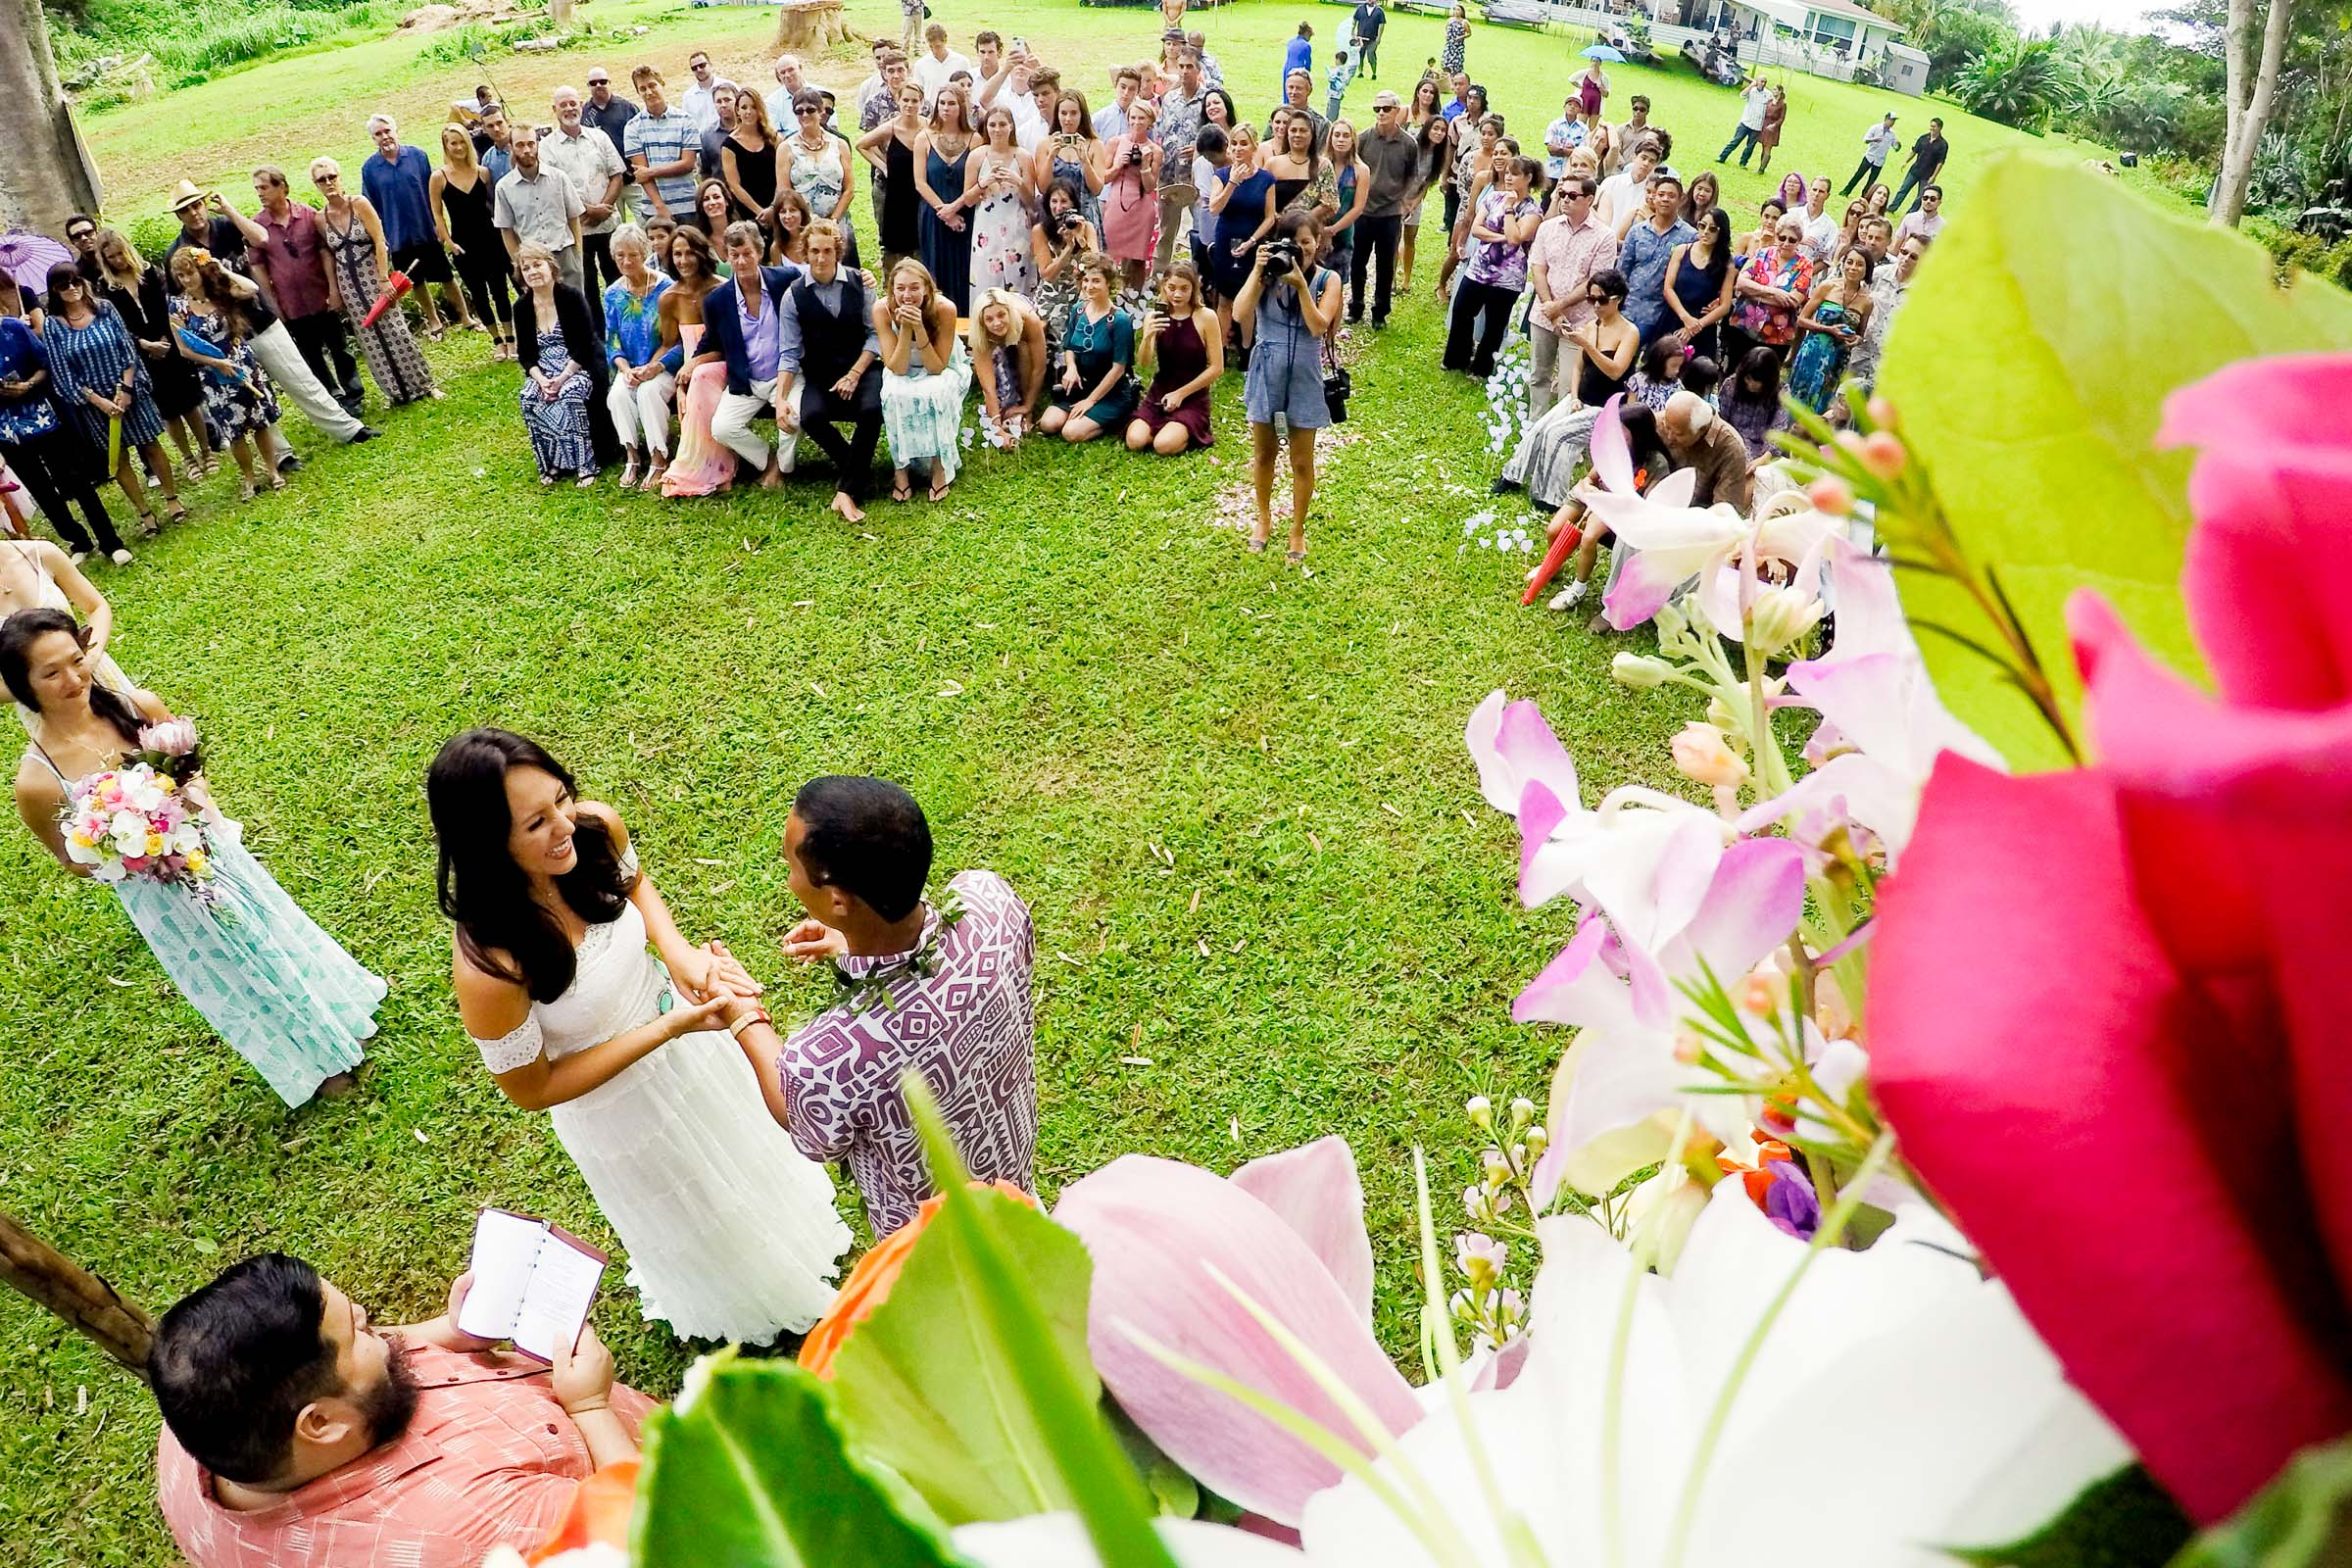 A wide angle perspective on the ceremony and guests during a Kauai Island wedding ceremony amidst massive majestic acacias trees on a private estate